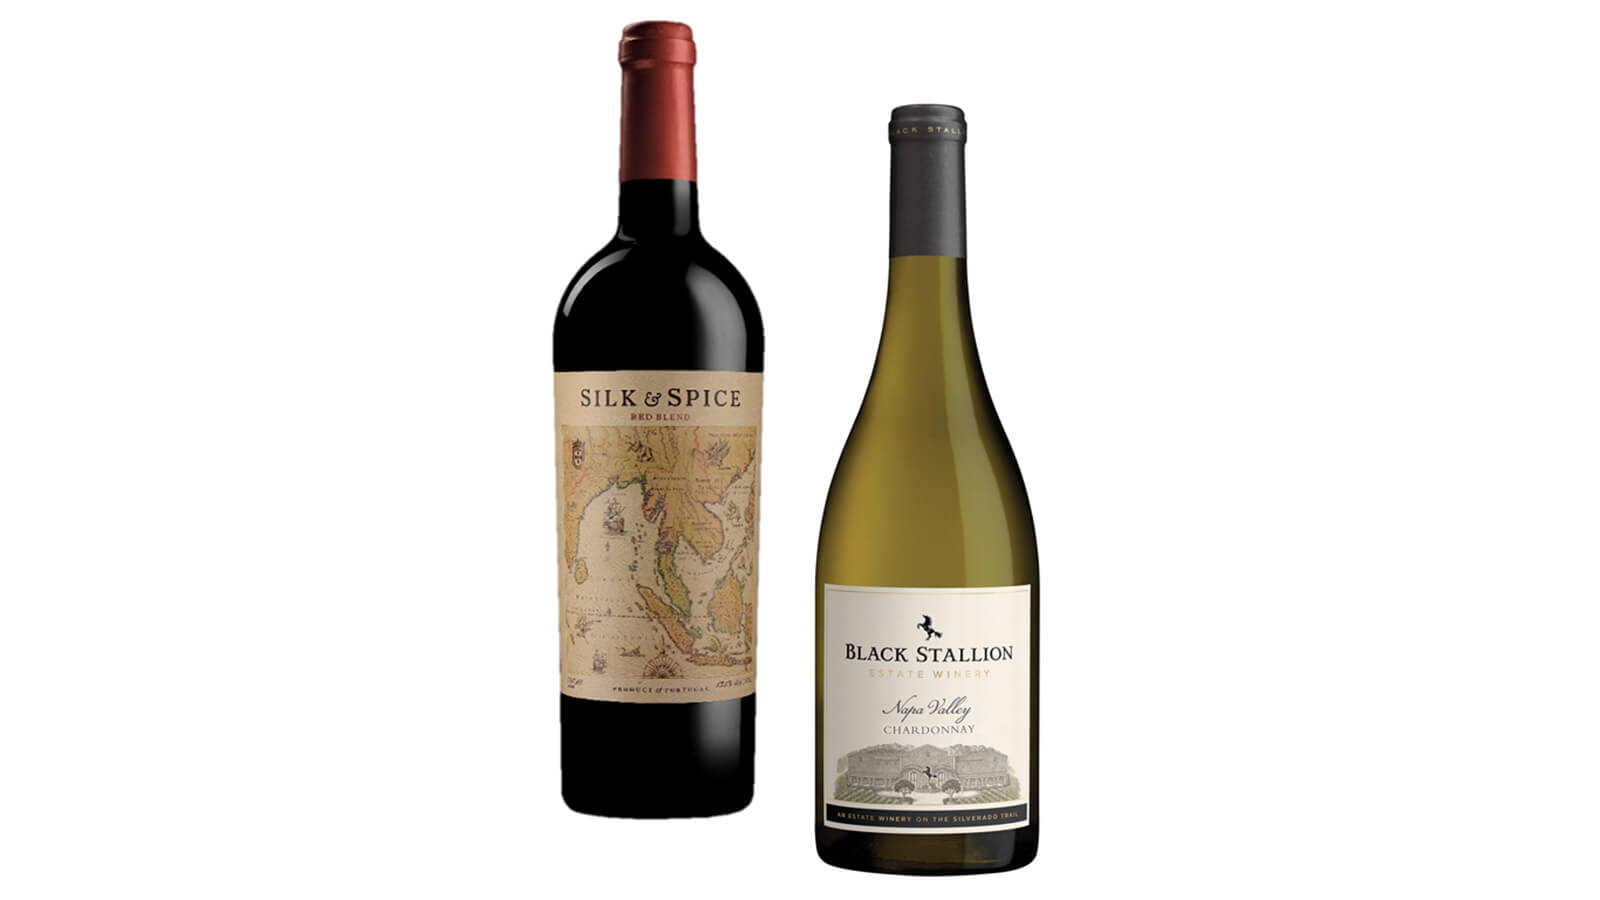 Silk & Spice Red Blend and Black Stallion Napa Chardonnay